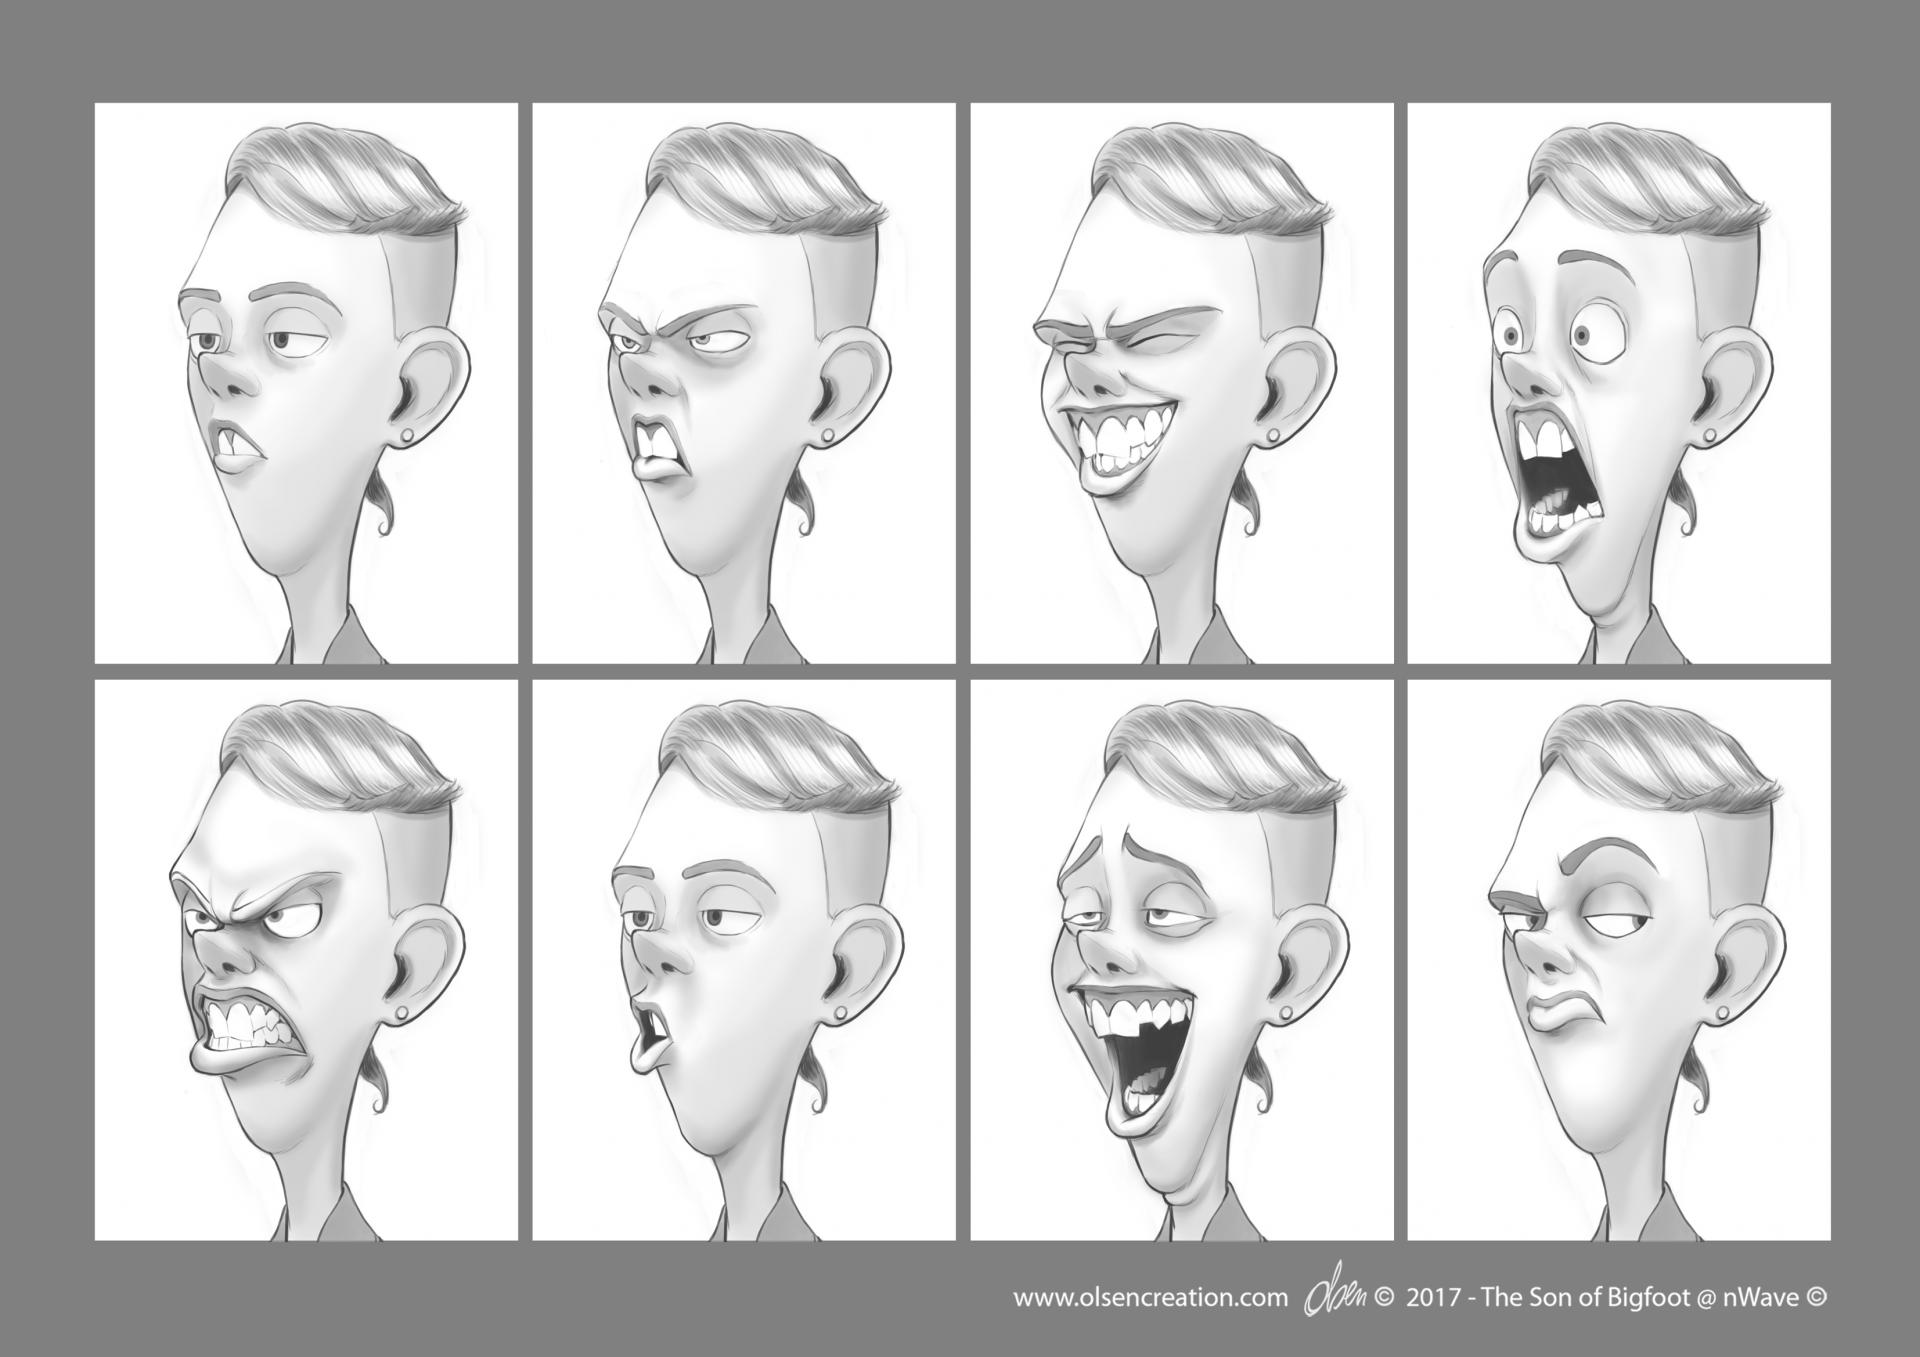 Charlie expression sheet